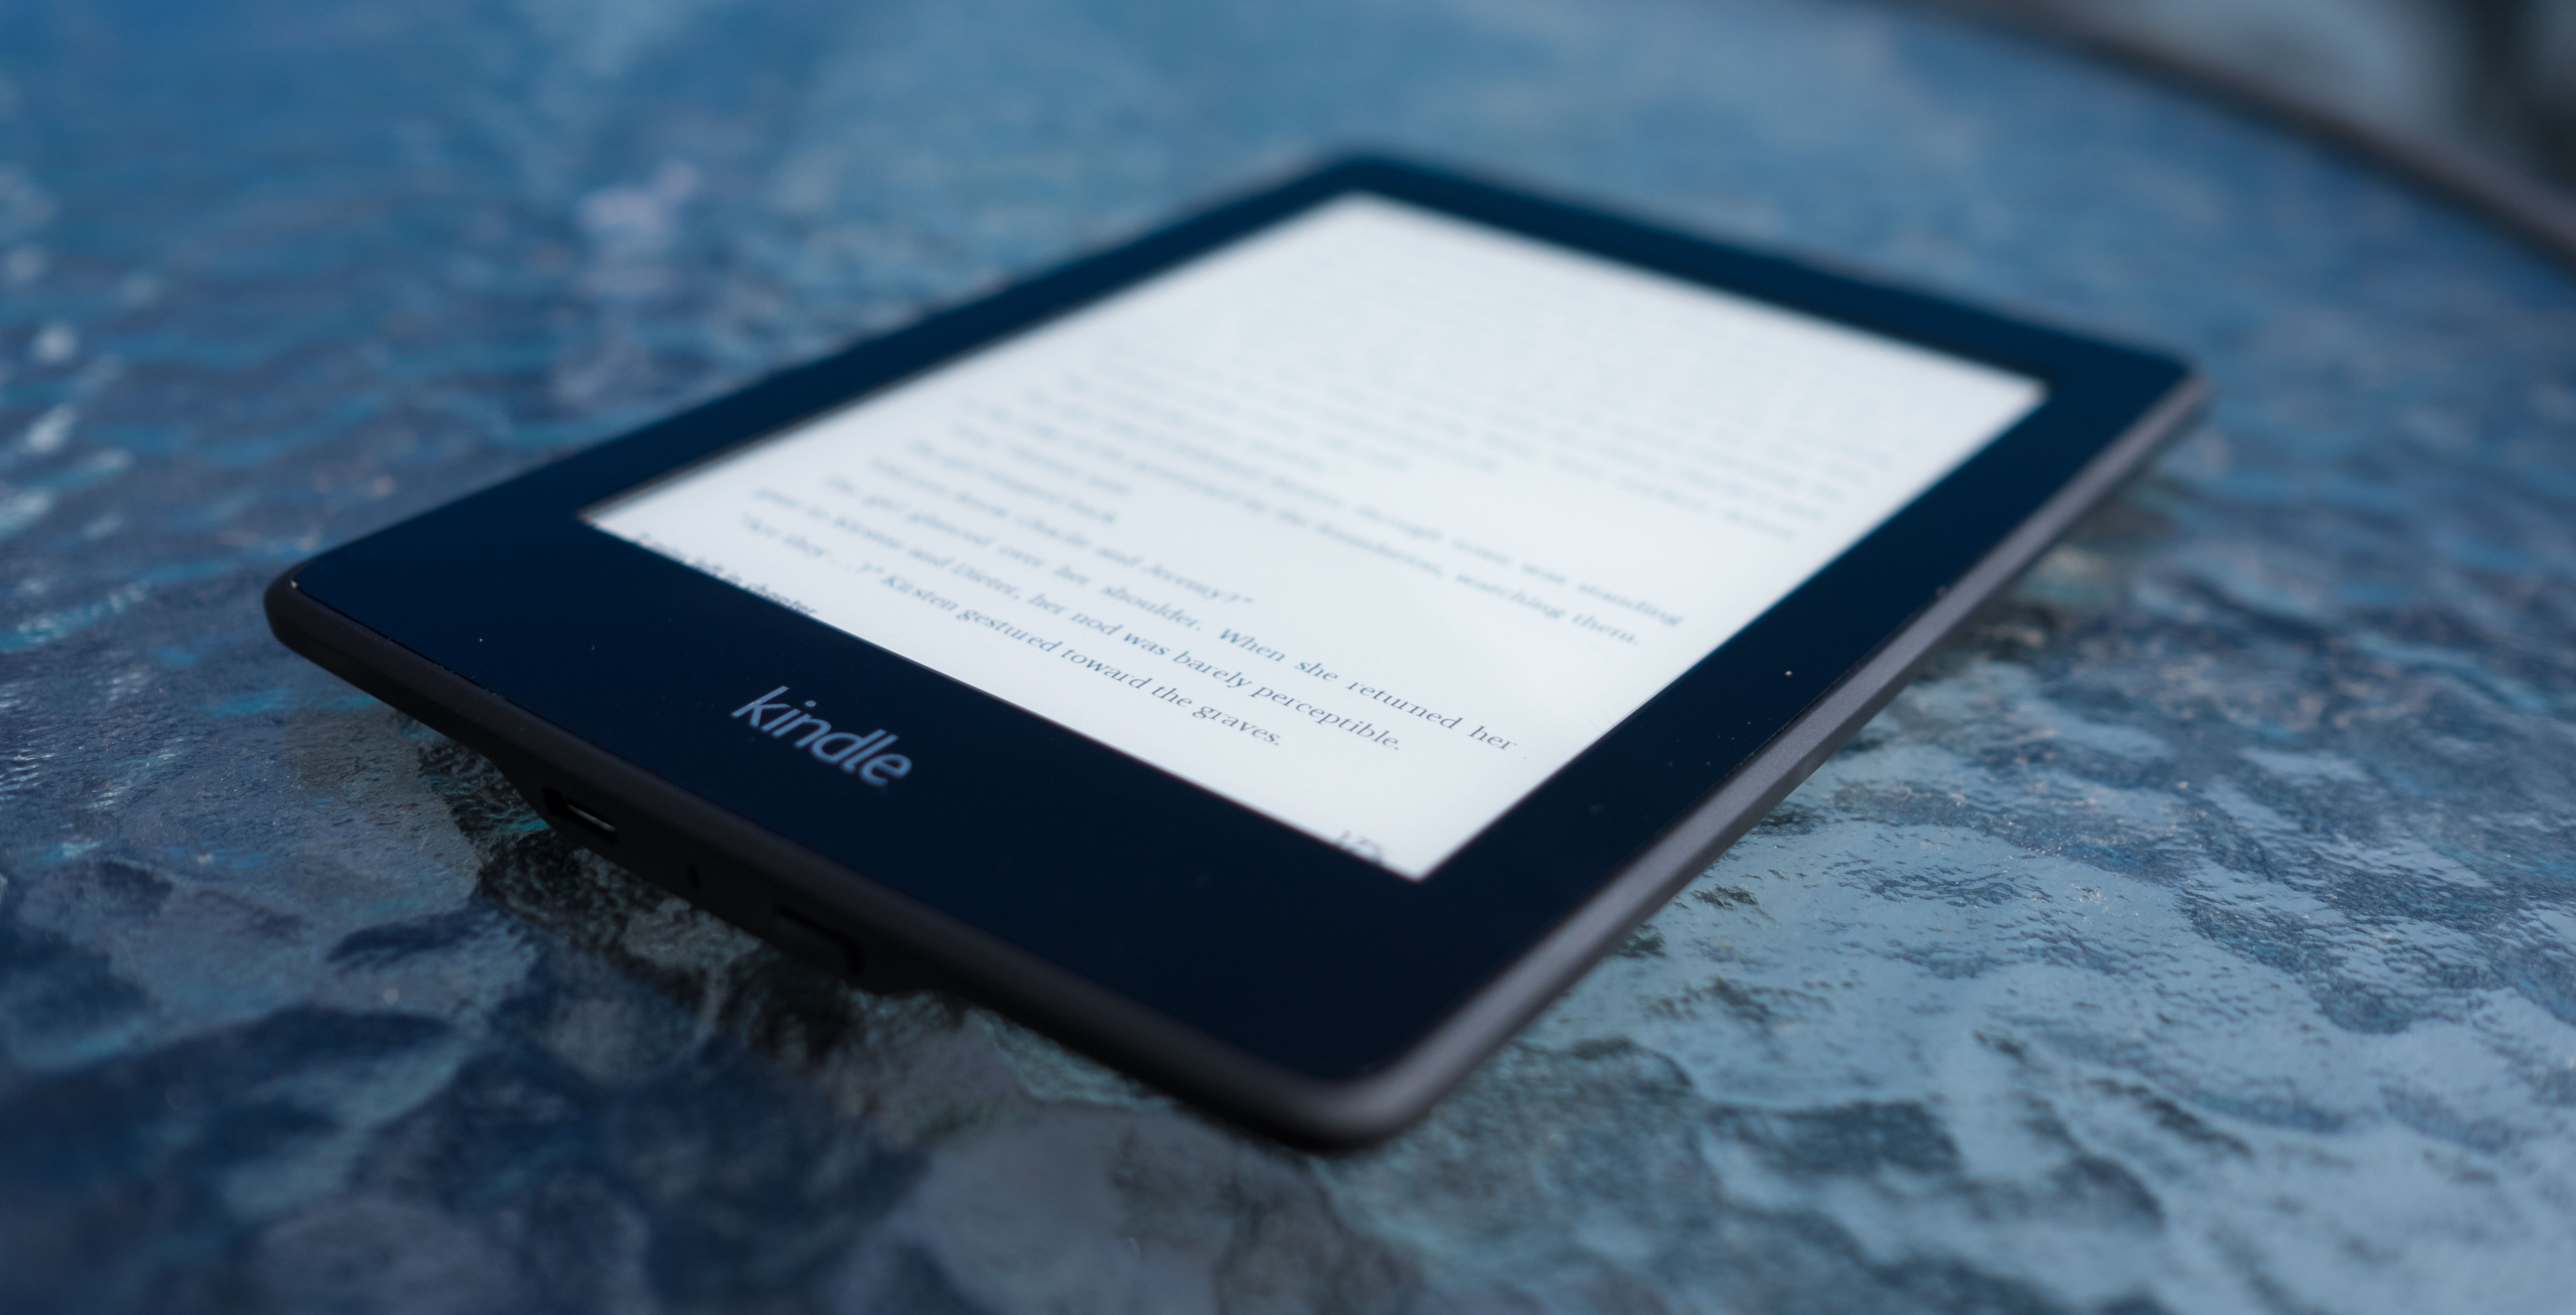 kindle2 Ideal gifts: Rekindle your love of reading with Kindle Paperwhite and The Circle by Dave Eggers